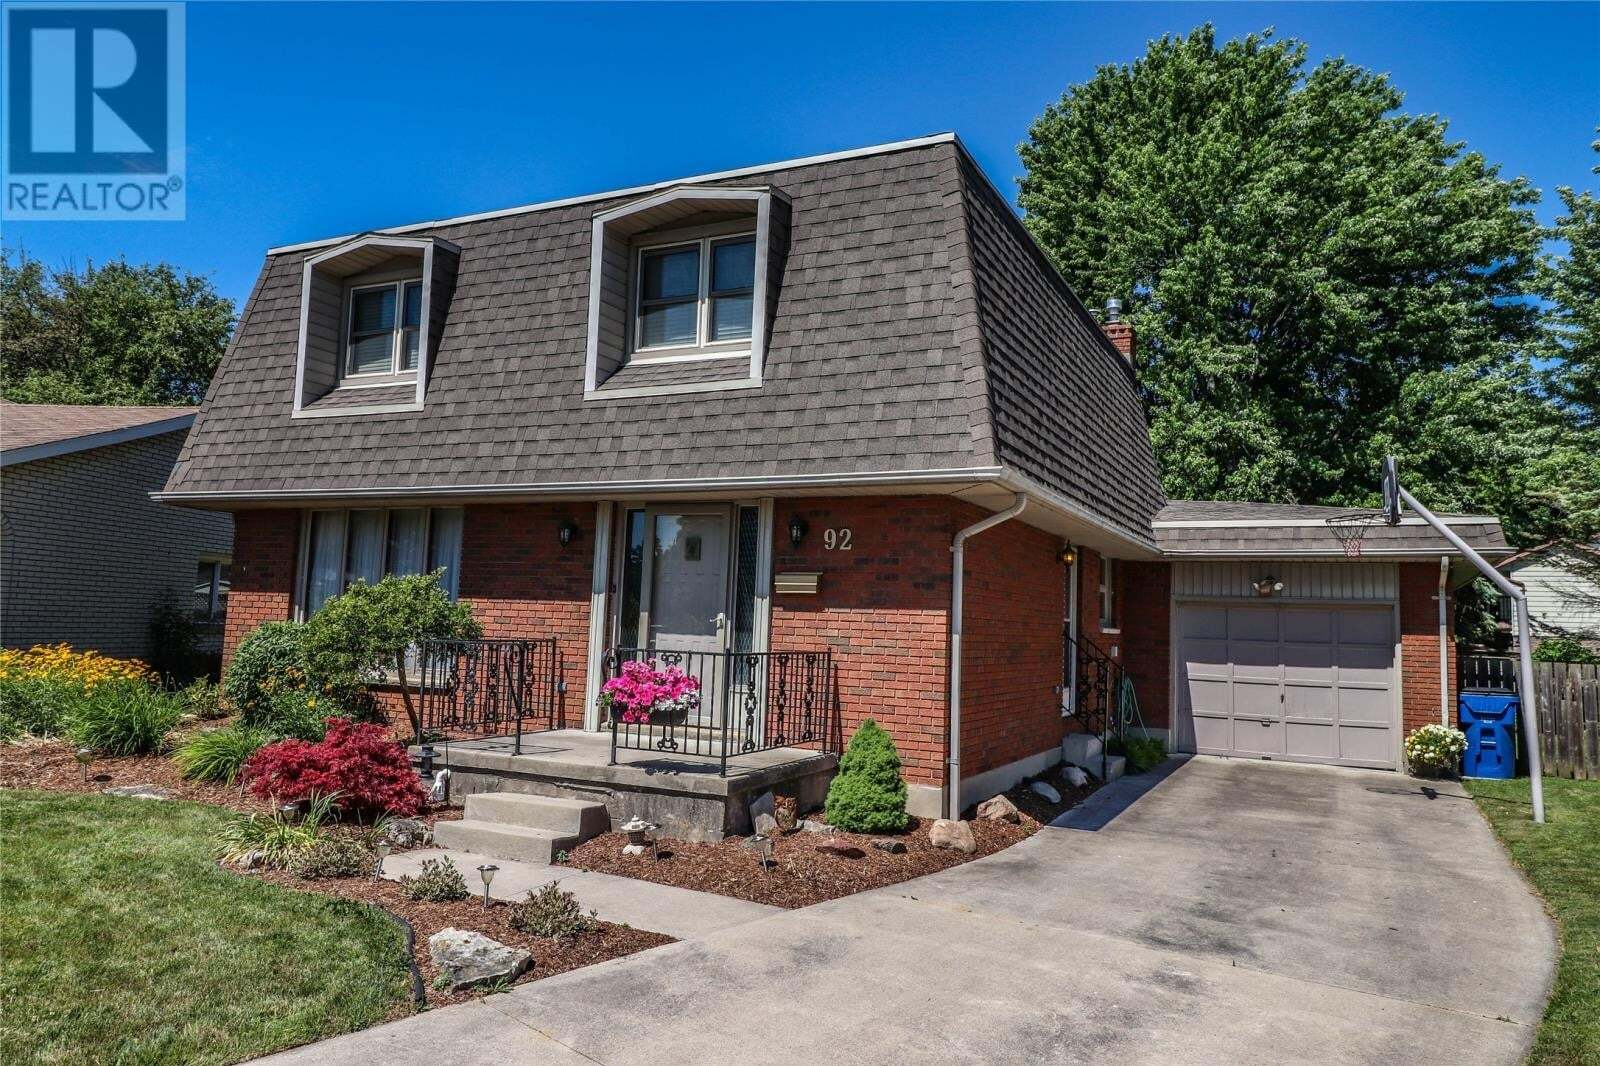 House for sale at 92 Collegiate Dr Chatham Ontario - MLS: 20008144